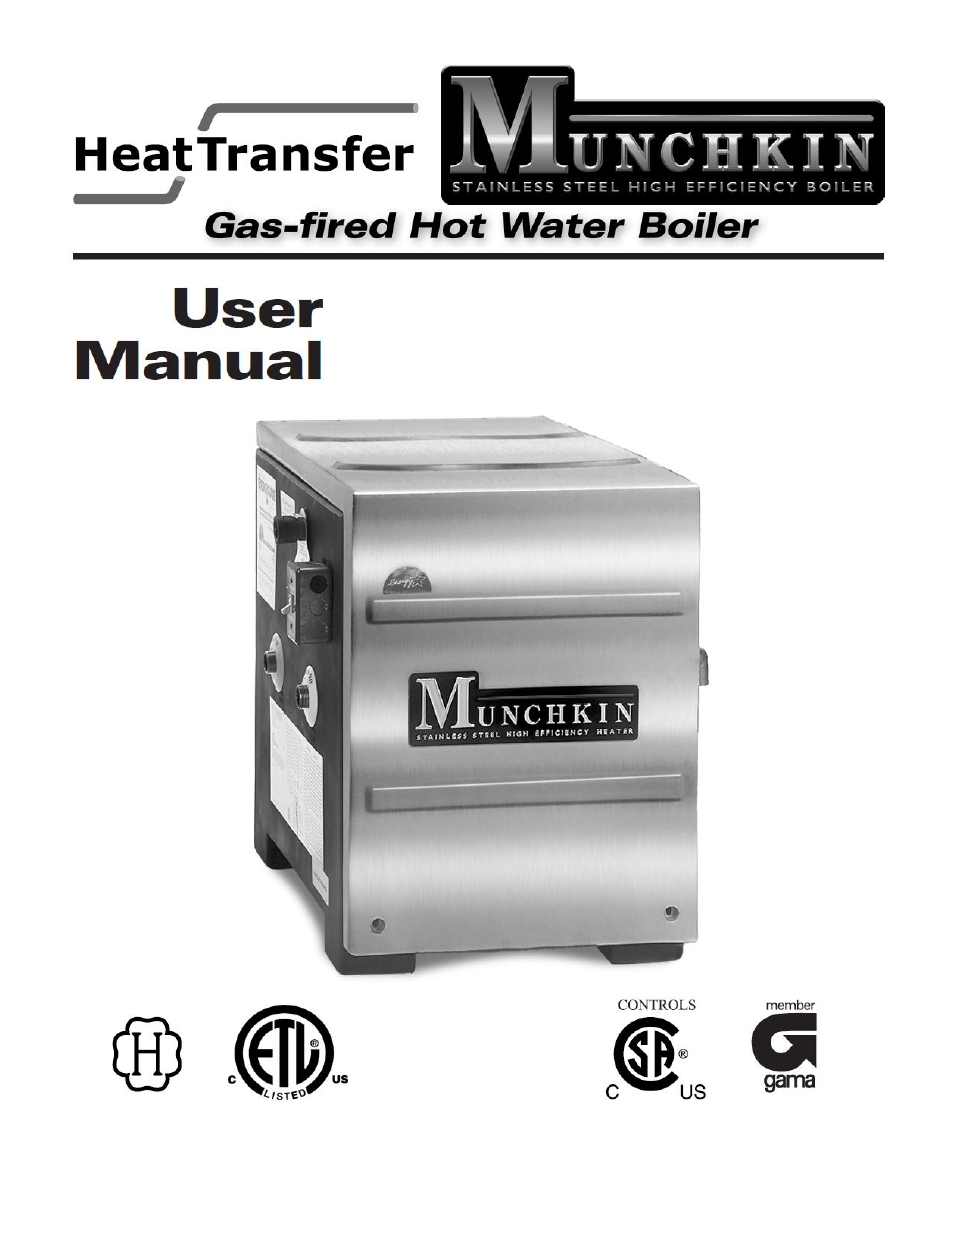 Munchkin Gas-Fired Hot Water Boiler User Manual | 12 pages